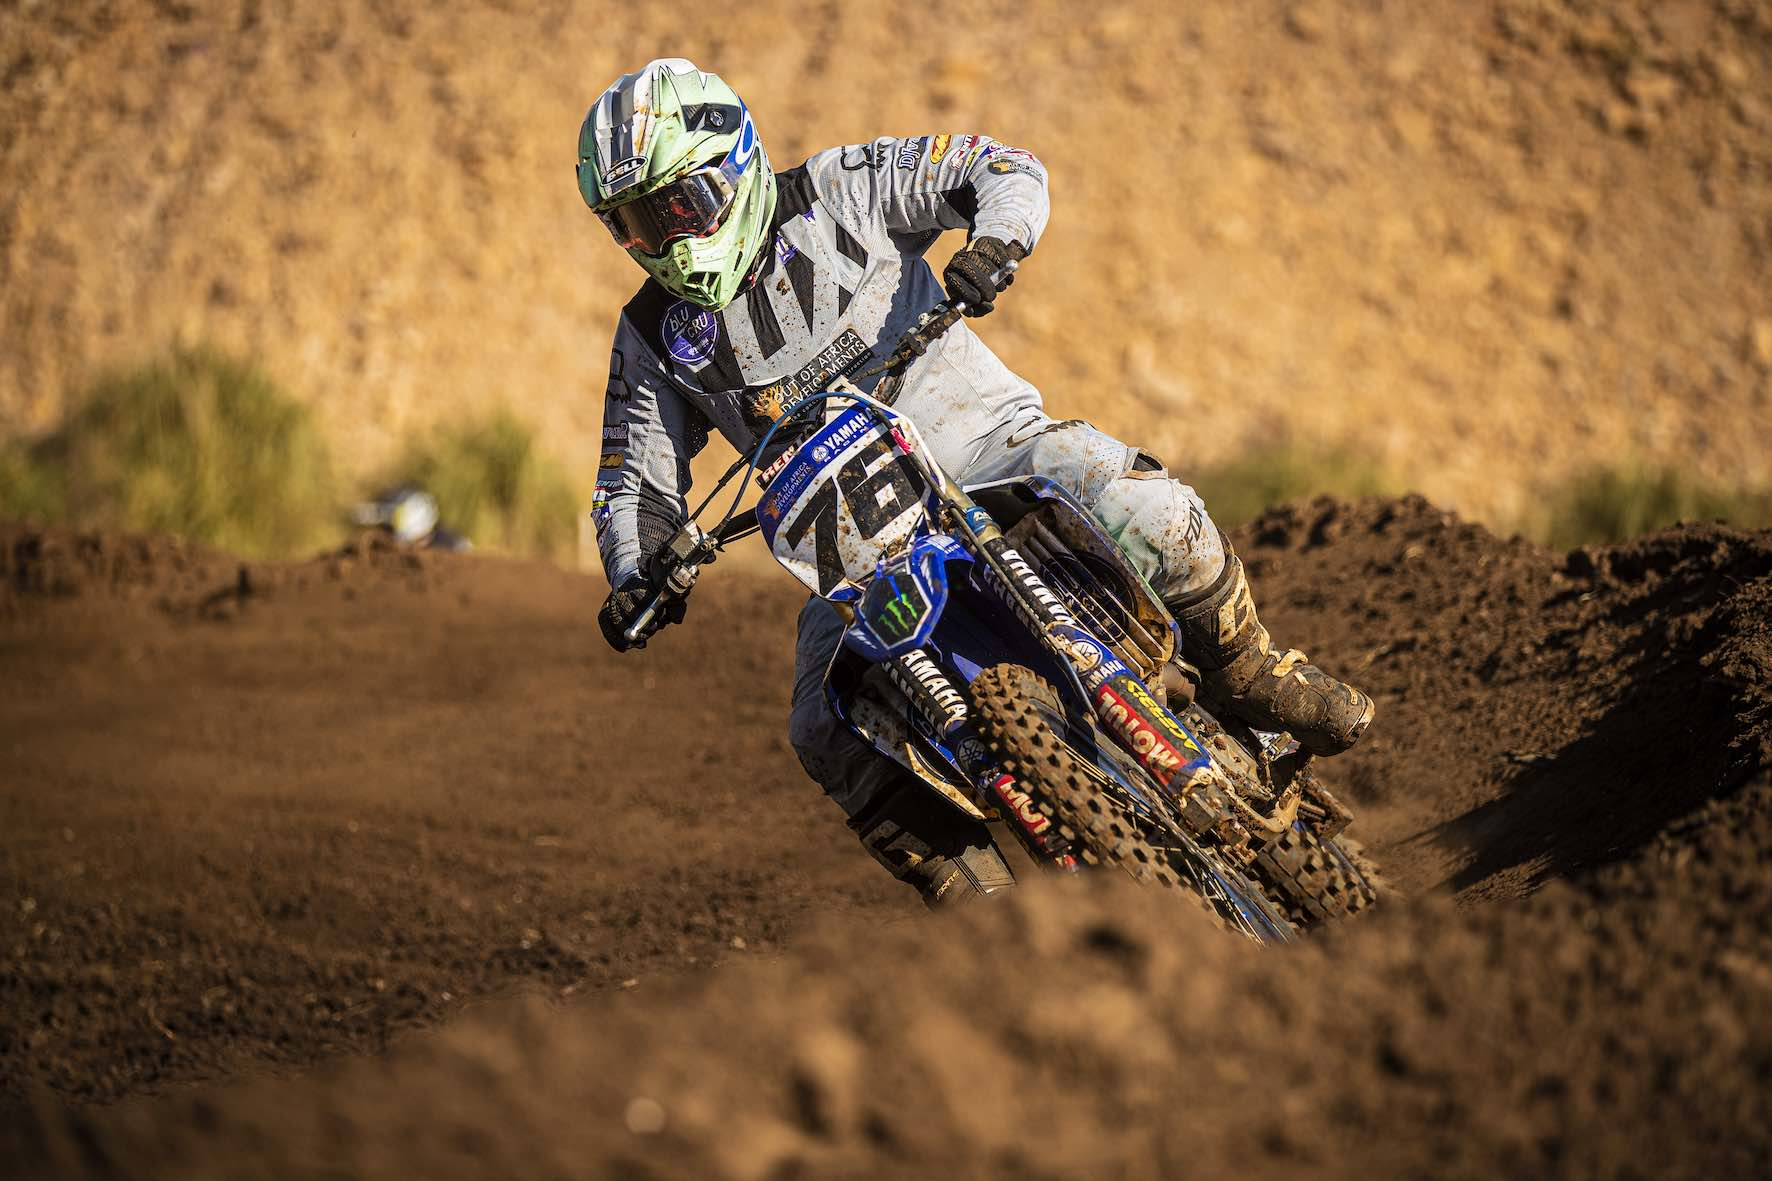 Ian Topliss racing Round 4 of the 2019 SA Motocross Nationals at Dirt Bronco